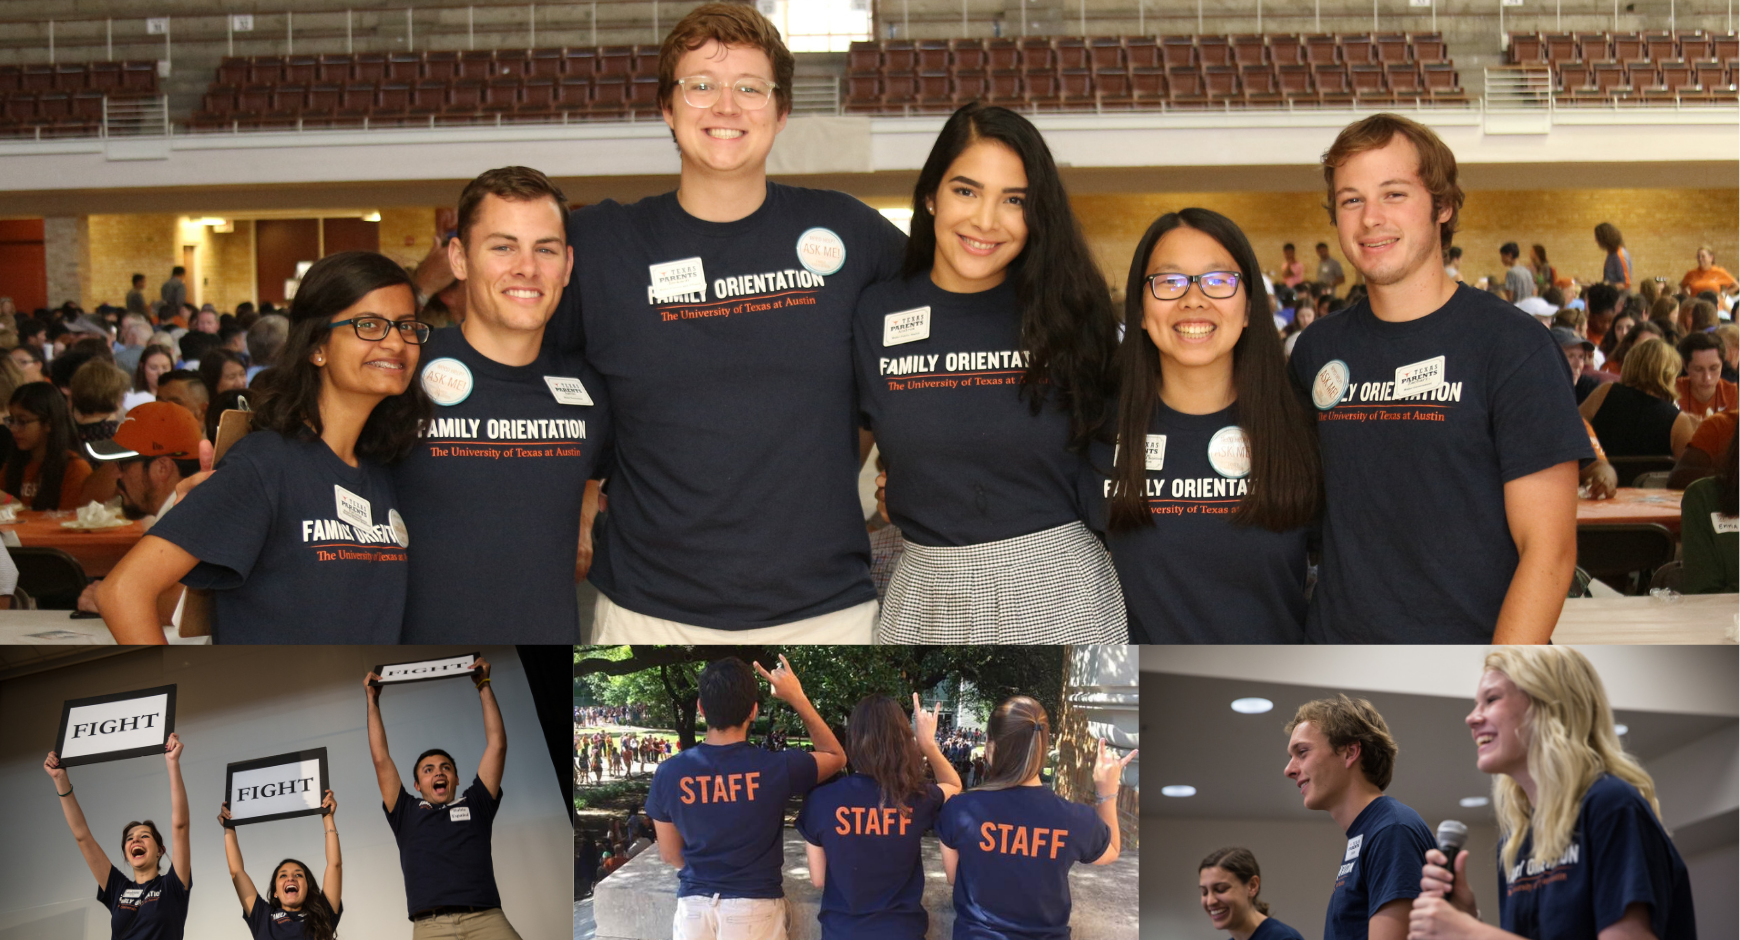 Collage of Family Orientation Student Leaders